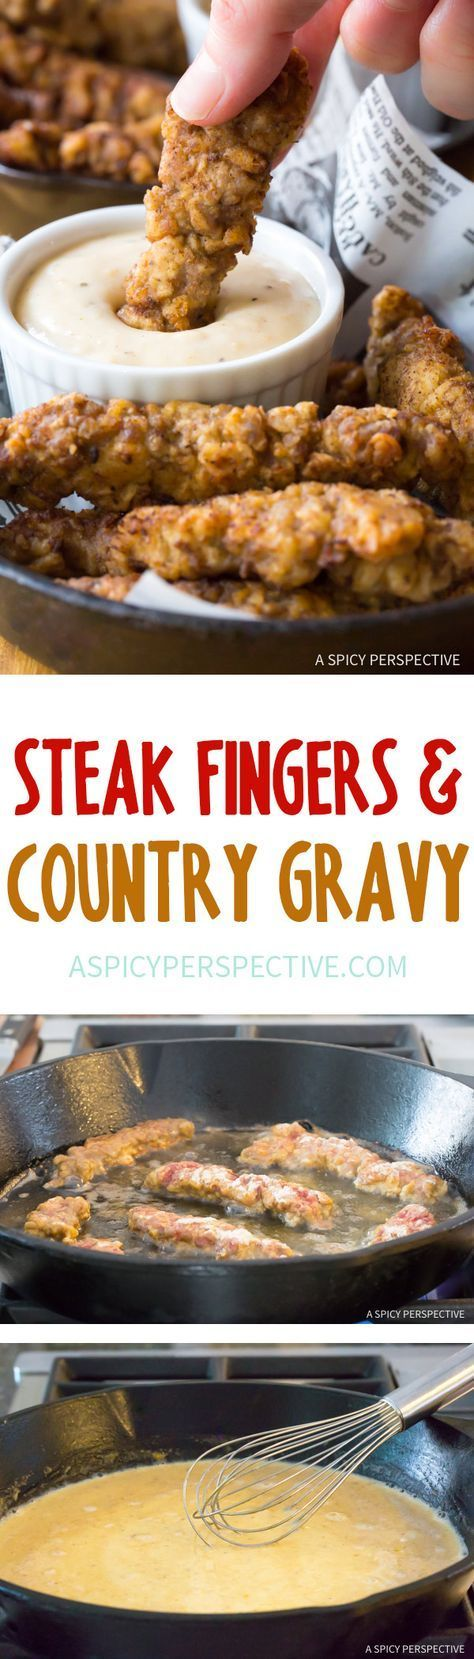 Crispy Steak Fingers with Country Gravy Recipe This is worth trying at least once. Never crossed my mind to do this with steak.